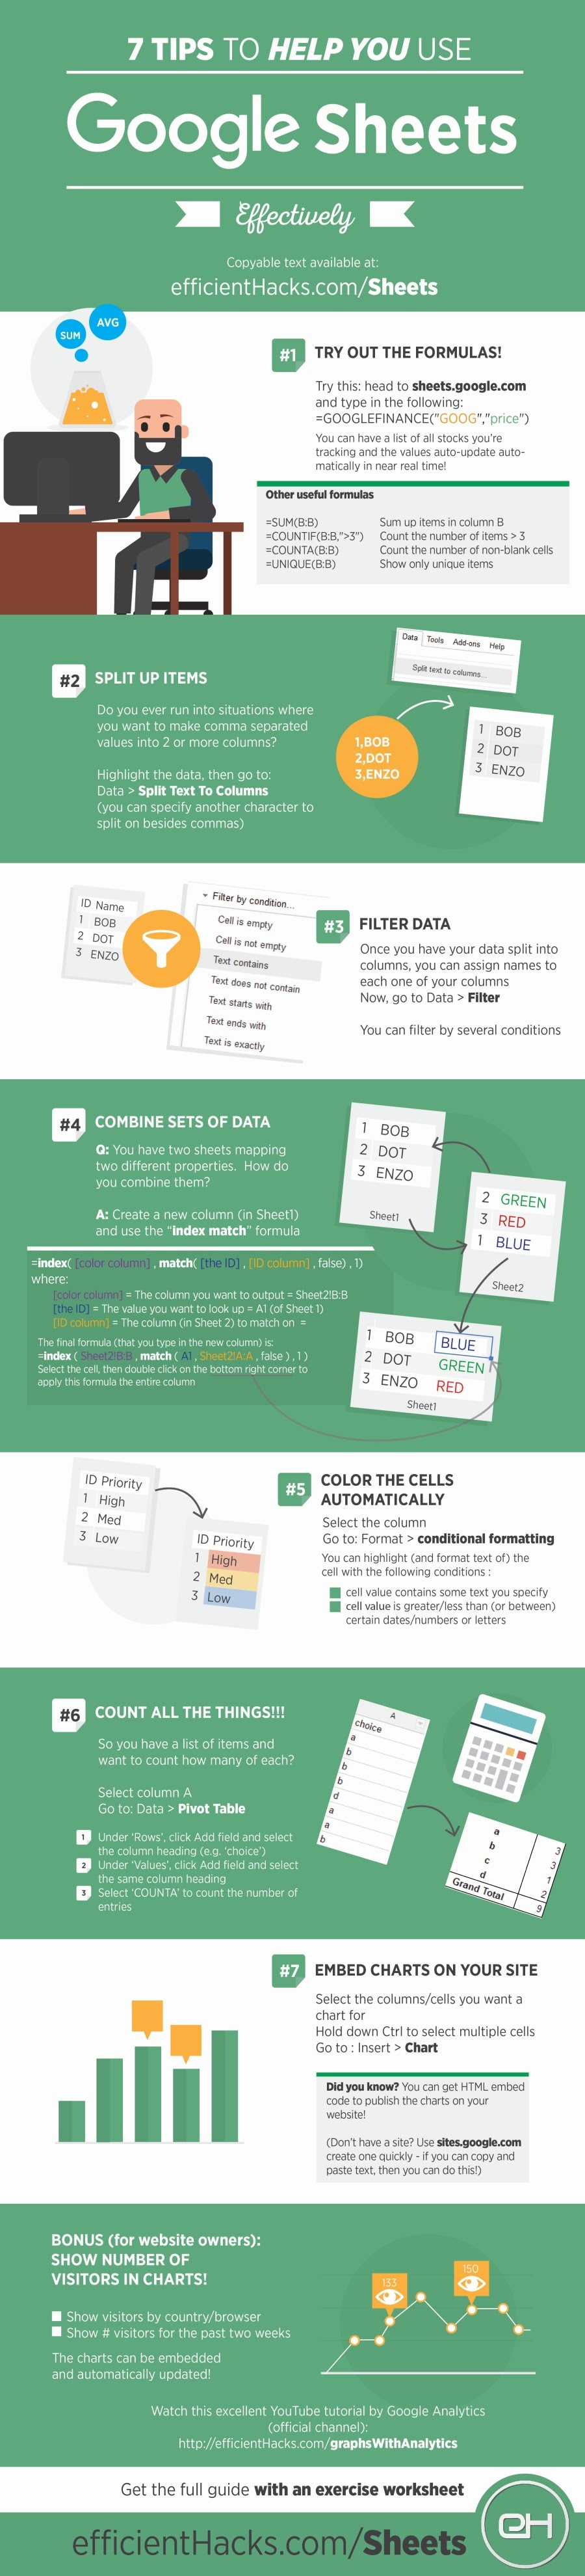 7 Tips To Help You Use Google Sheets Effectively - #infographic